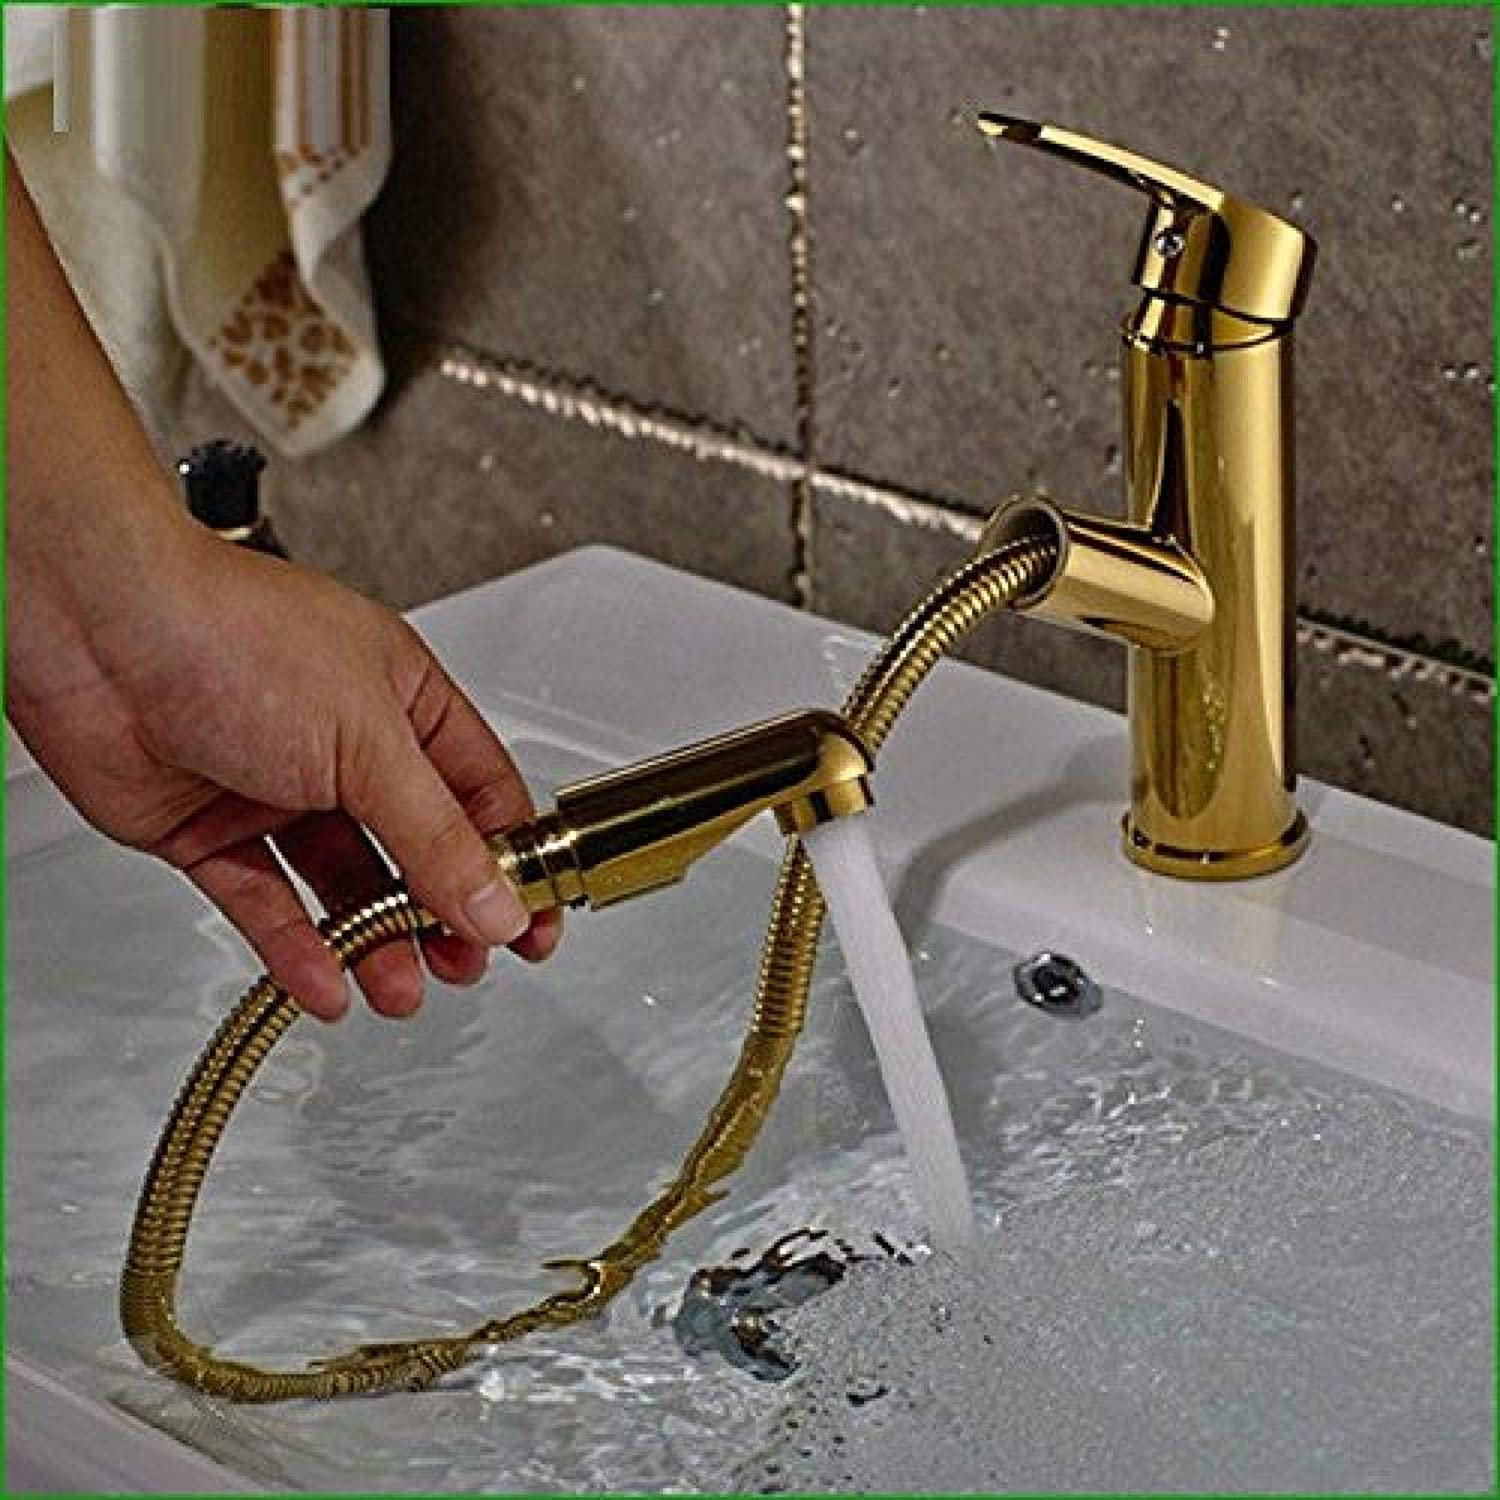 Honcx Copper Hot and Cold Kitchen Sink Taps Kitchen Faucet Antique Copper Chrome-Plated gold Bathroom Kitchen Basin Basin Hot and Cold Water Mixing Can Pull Single-Unit Faucet